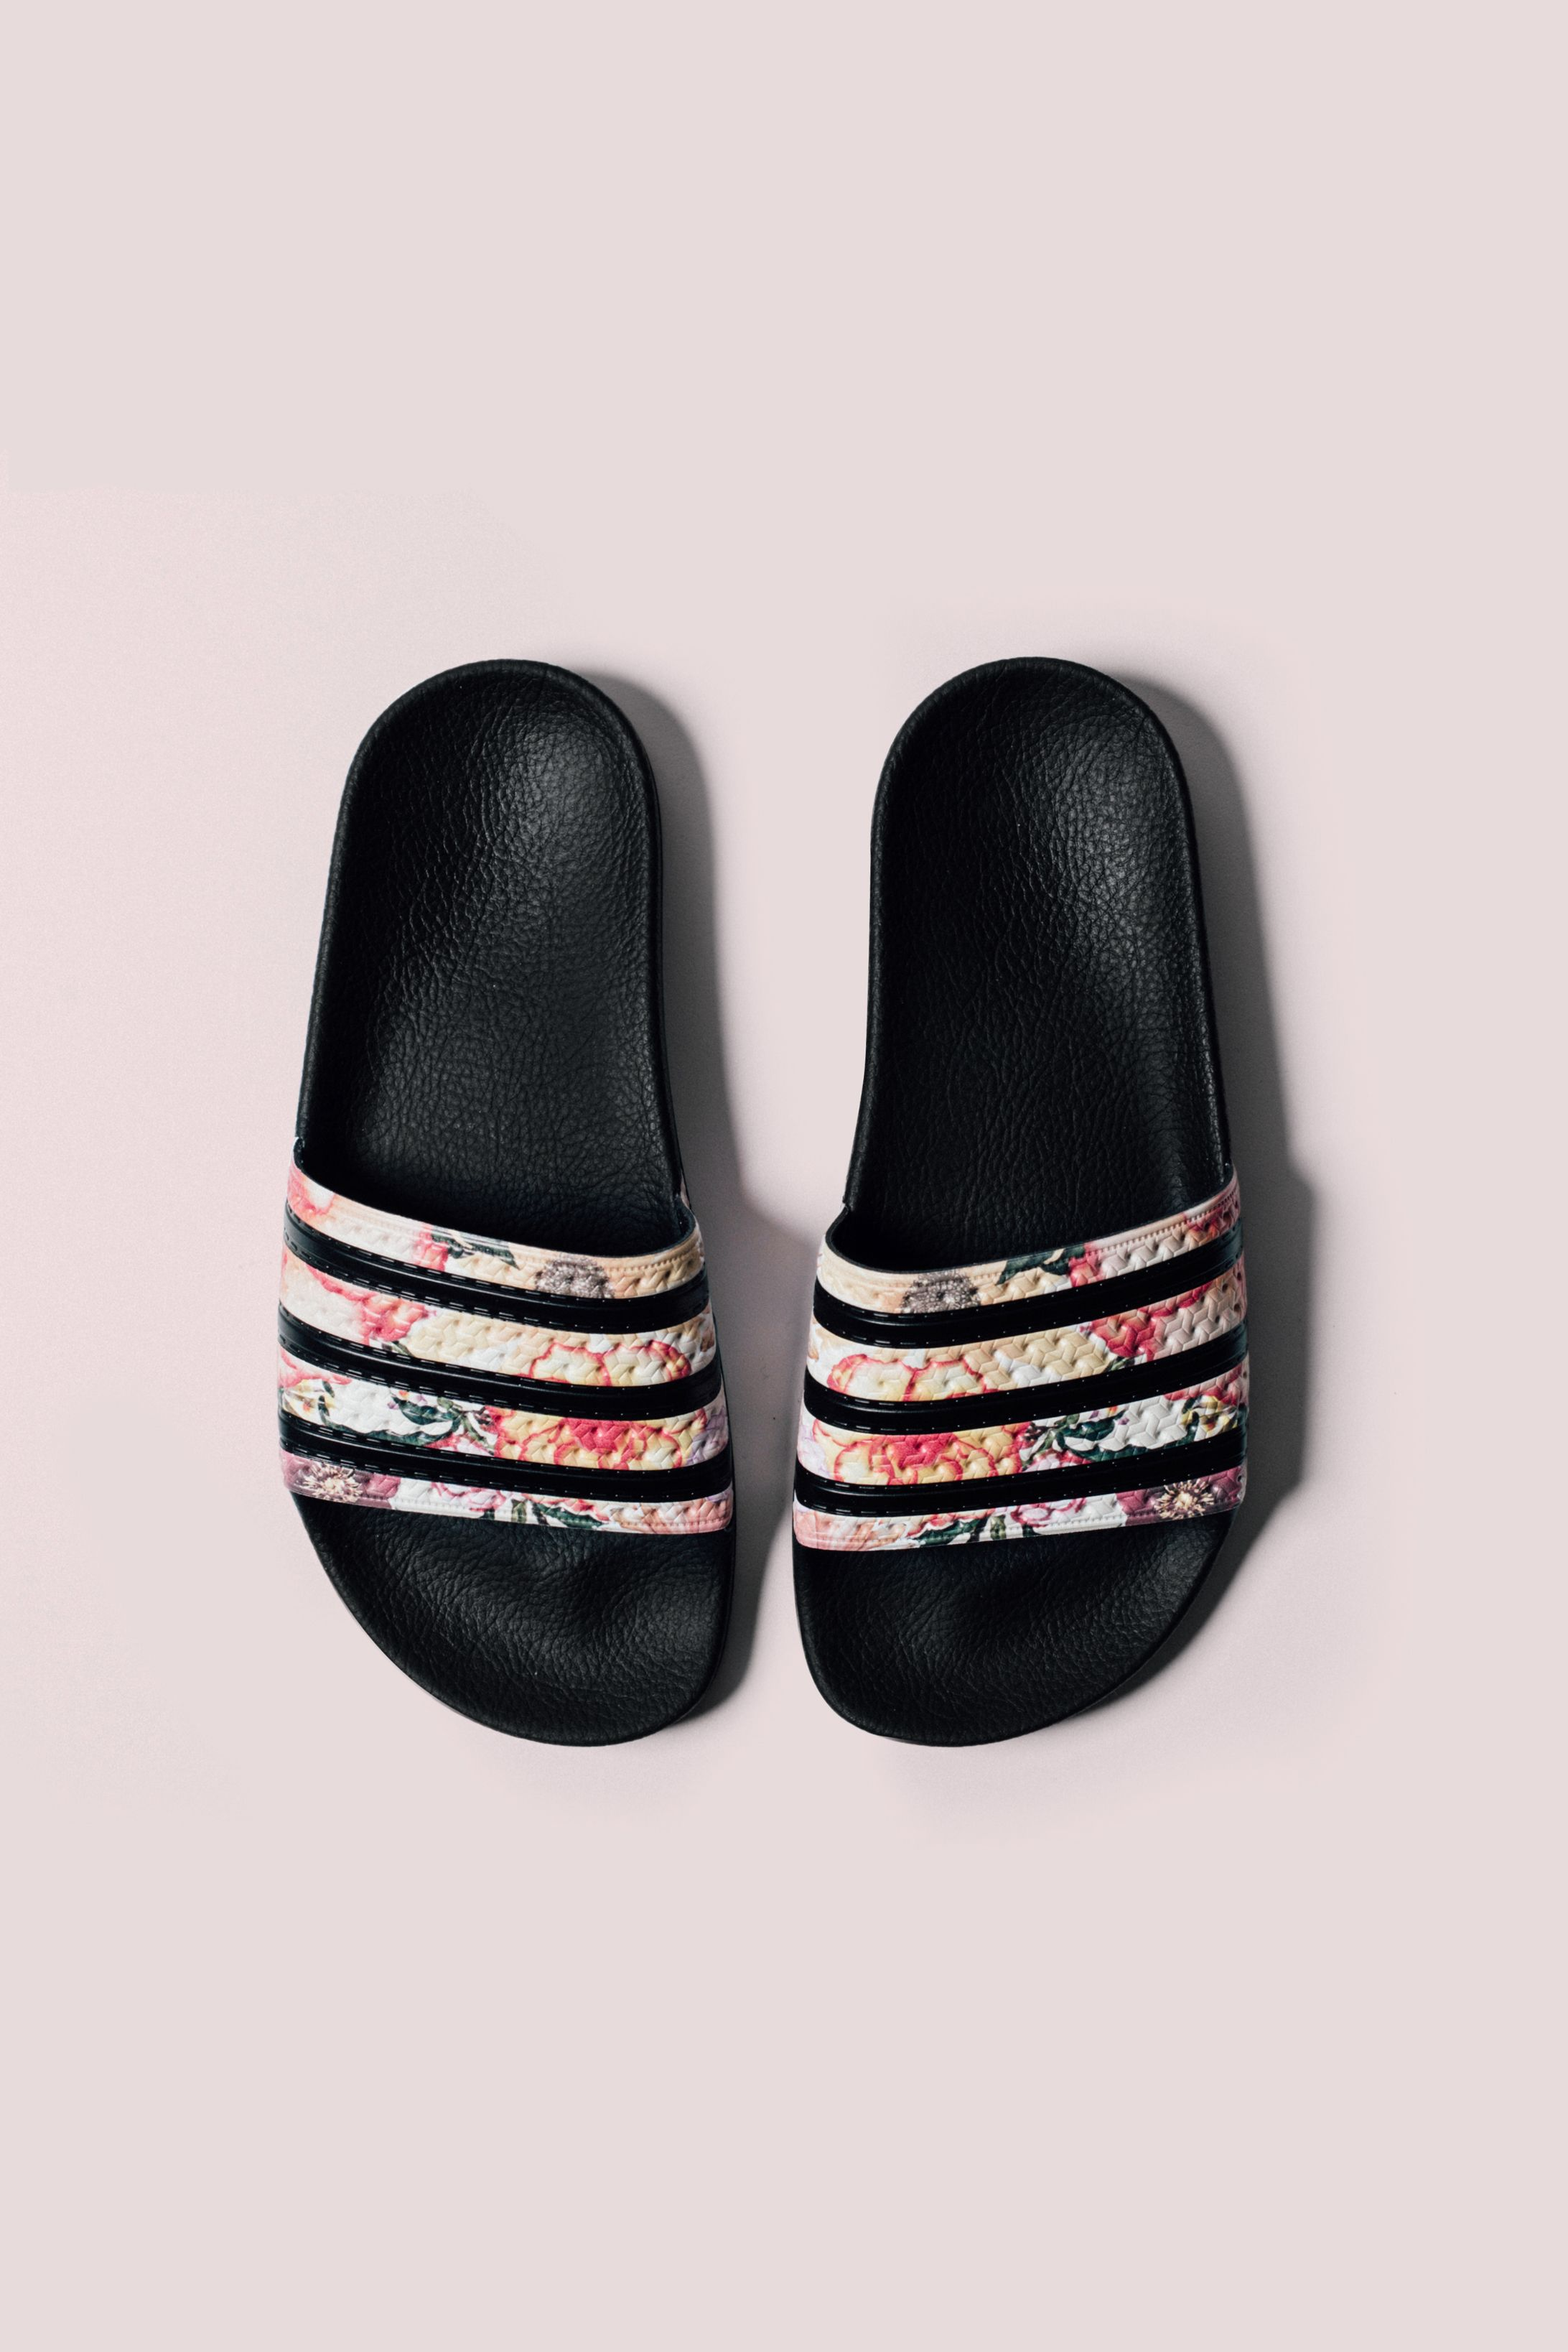 21cb3179e1f1 Adidas Originals x Farm Women s Adilette Slides  Adidas  Adilette  SlipOns   Sandals  Fashion  Streetwear  Style  Urban  Lookbook  Photography  Footwear  ...